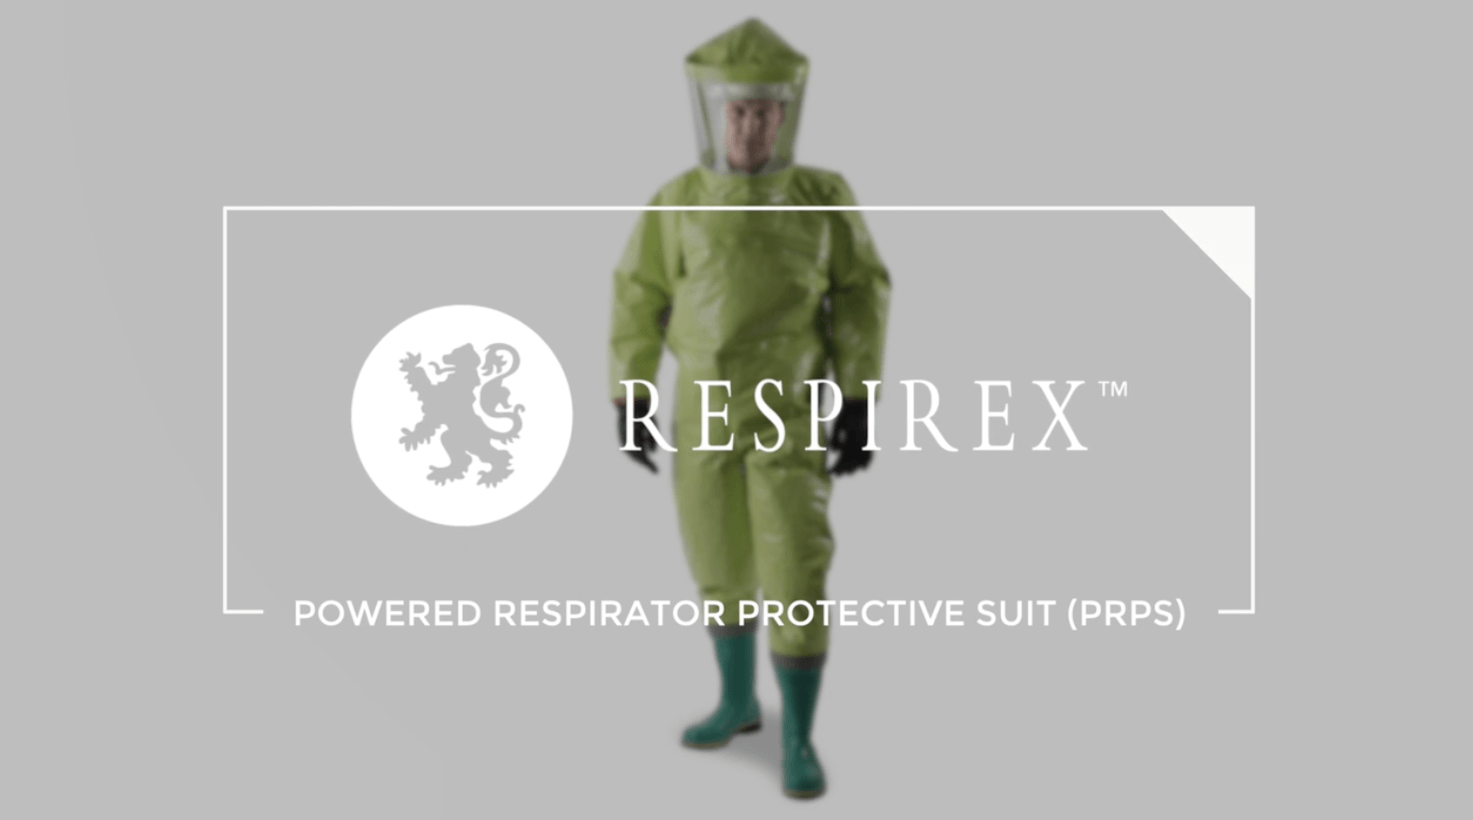 Powered Respirator Protective Suit (PRPS) from Respirex International